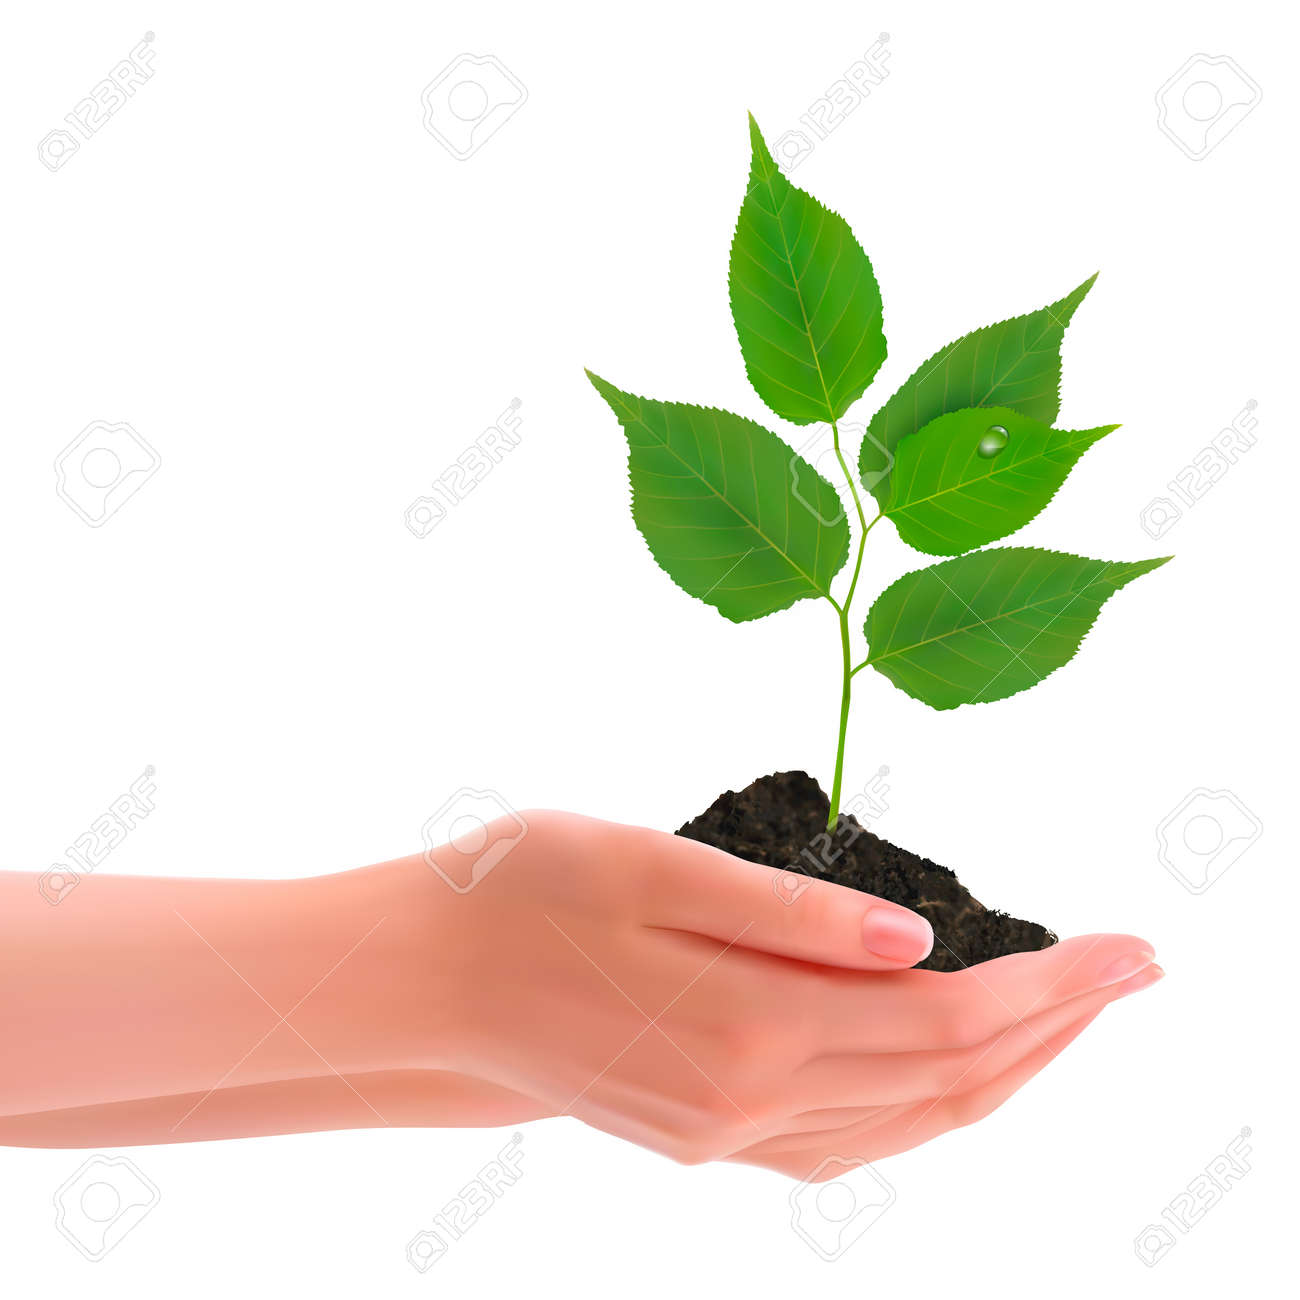 Hands holding young plant  Vector Stock Vector - 14021414